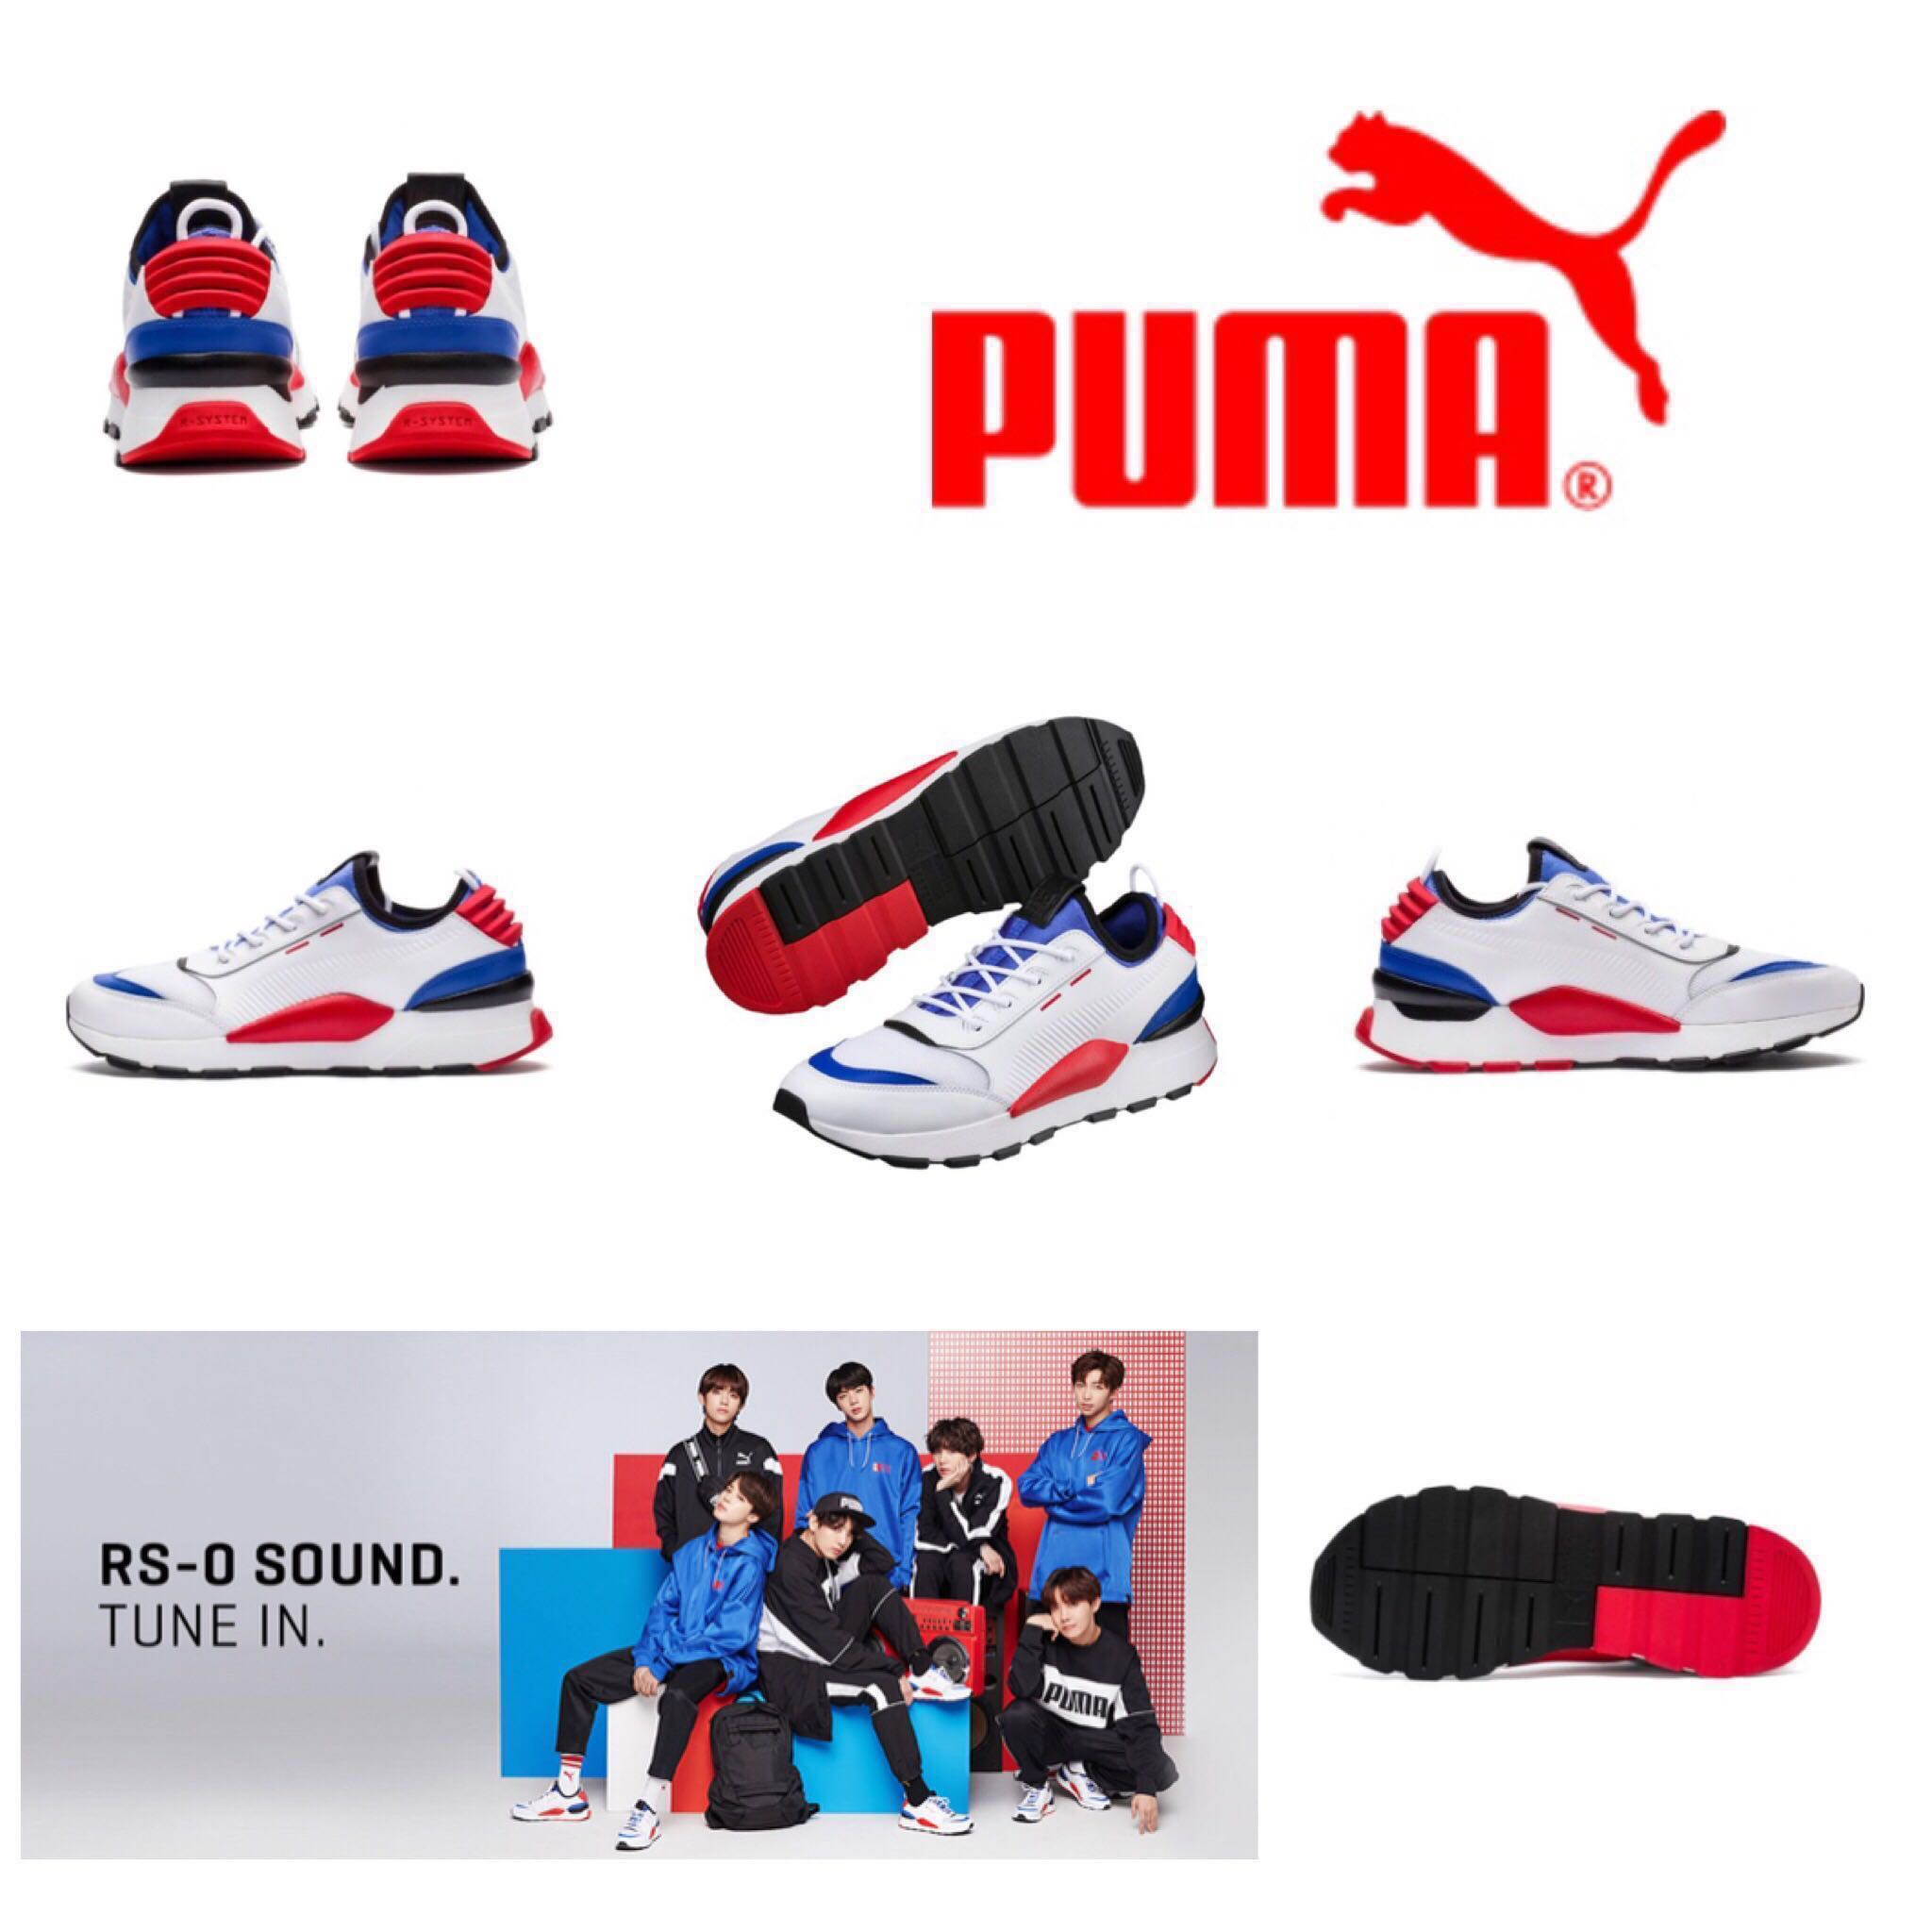 new product 26bbb c284b  INC EMS  BTS X PUMA RS-0 SOUND SHOES, Entertainment, K-Wave on Carousell